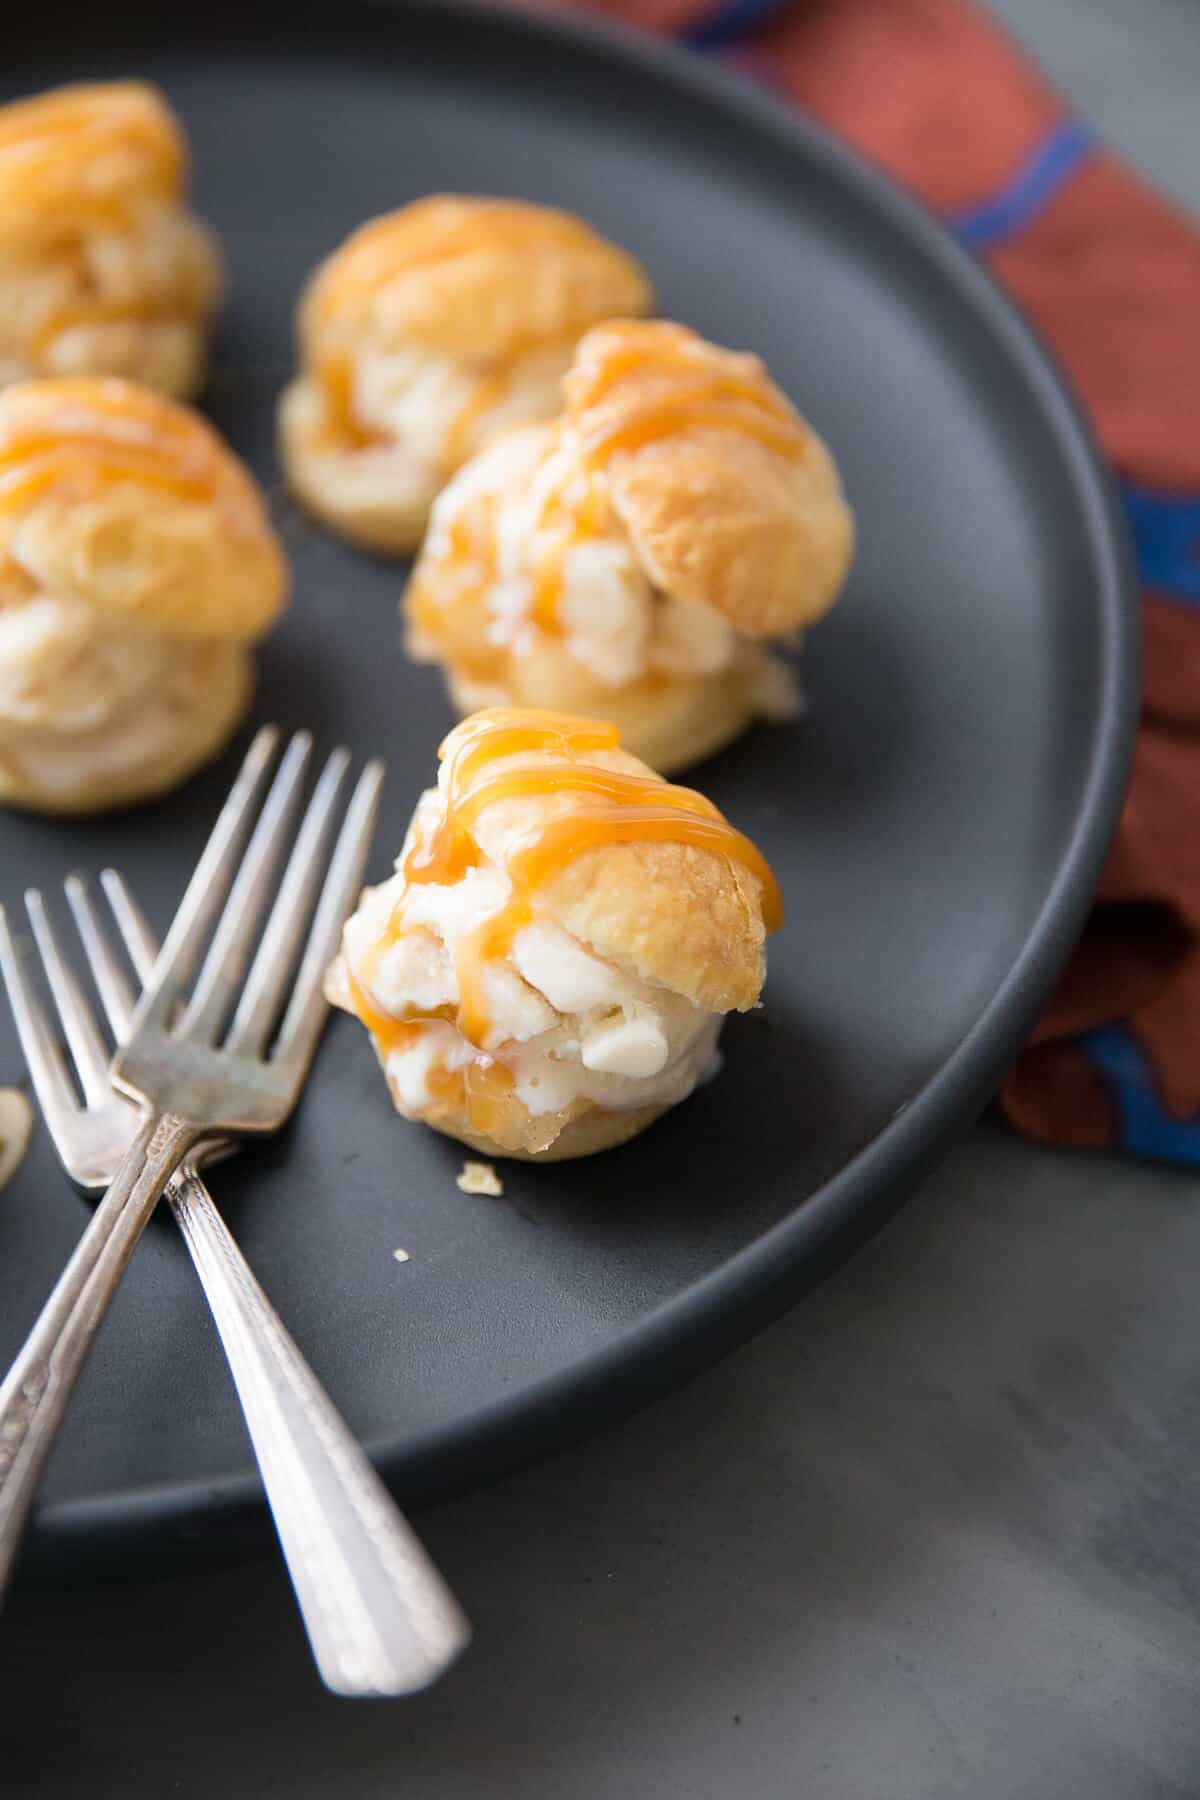 Five light and airy puff profiteroles on a black serving plate with two silver forks.